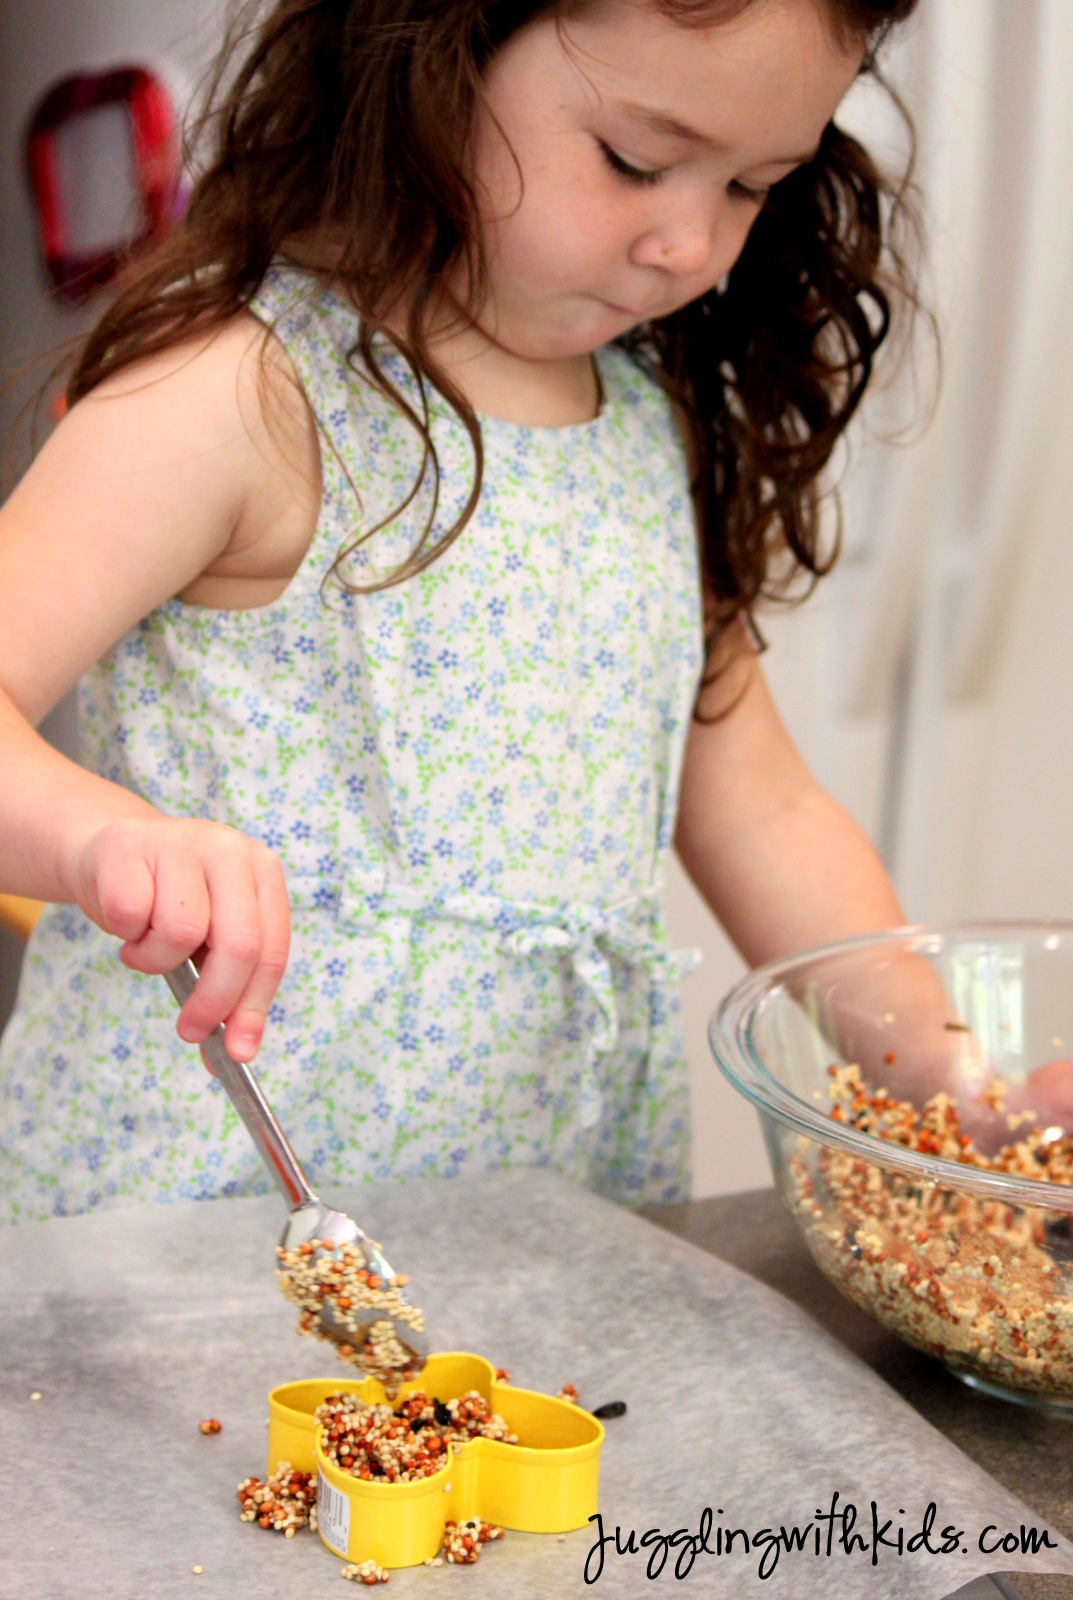 Cookie cutter recipes for toddlers